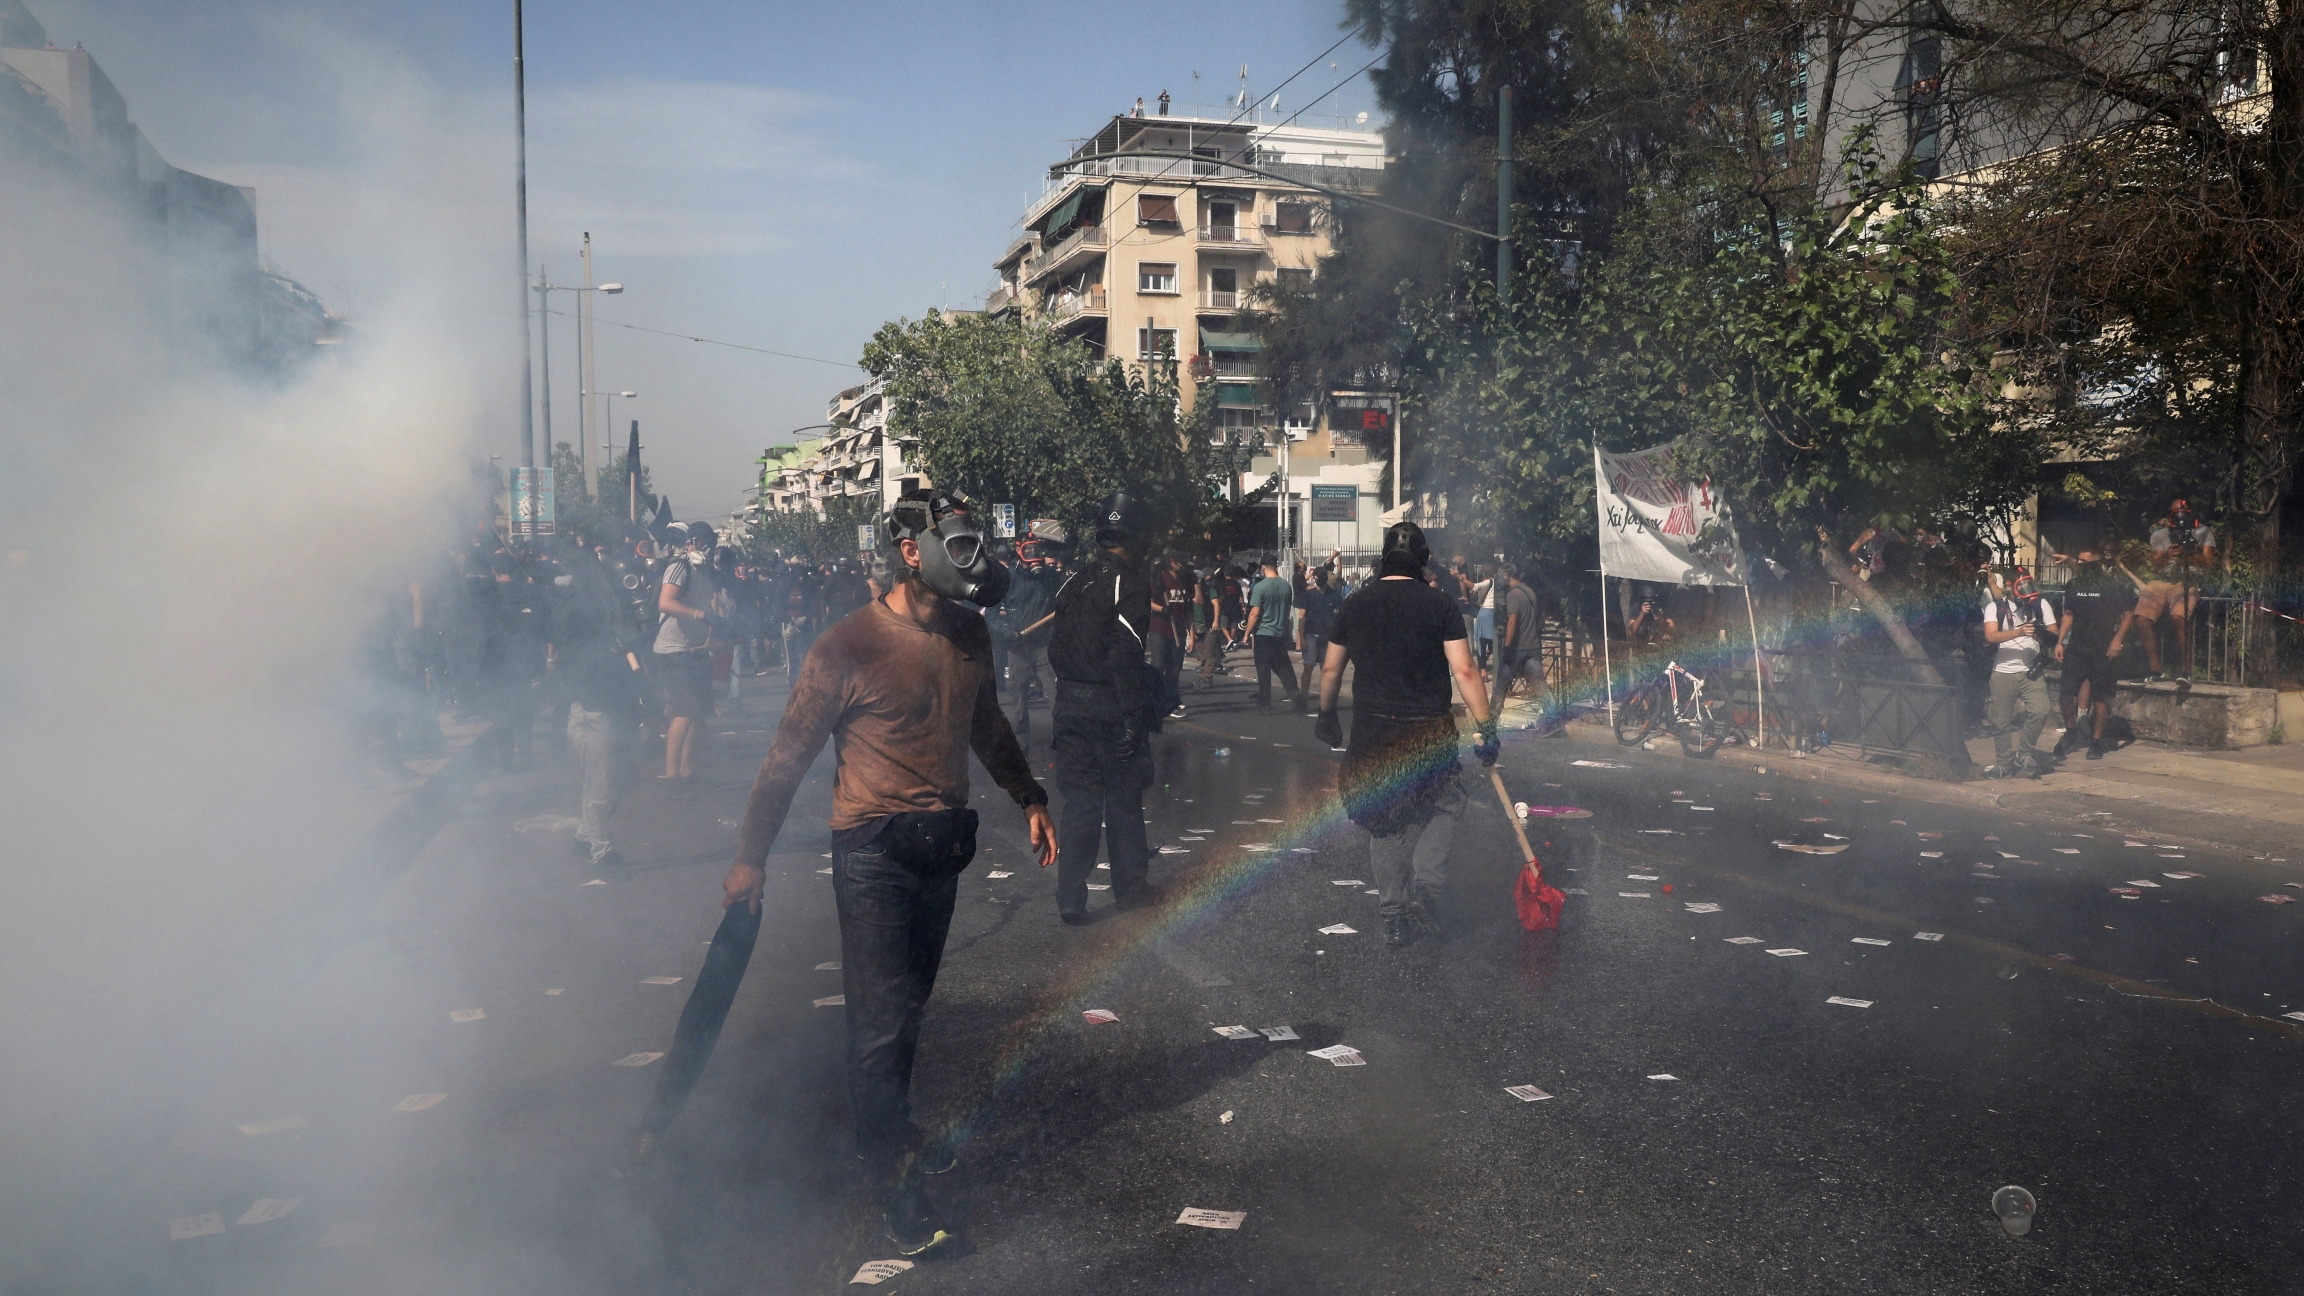 Protesters are seen among tear gas during clashes outside a court, where the trial of leaders and members of the Golden Dawn far-right party takes place in Athens, Greece, Oct.7, 2020.